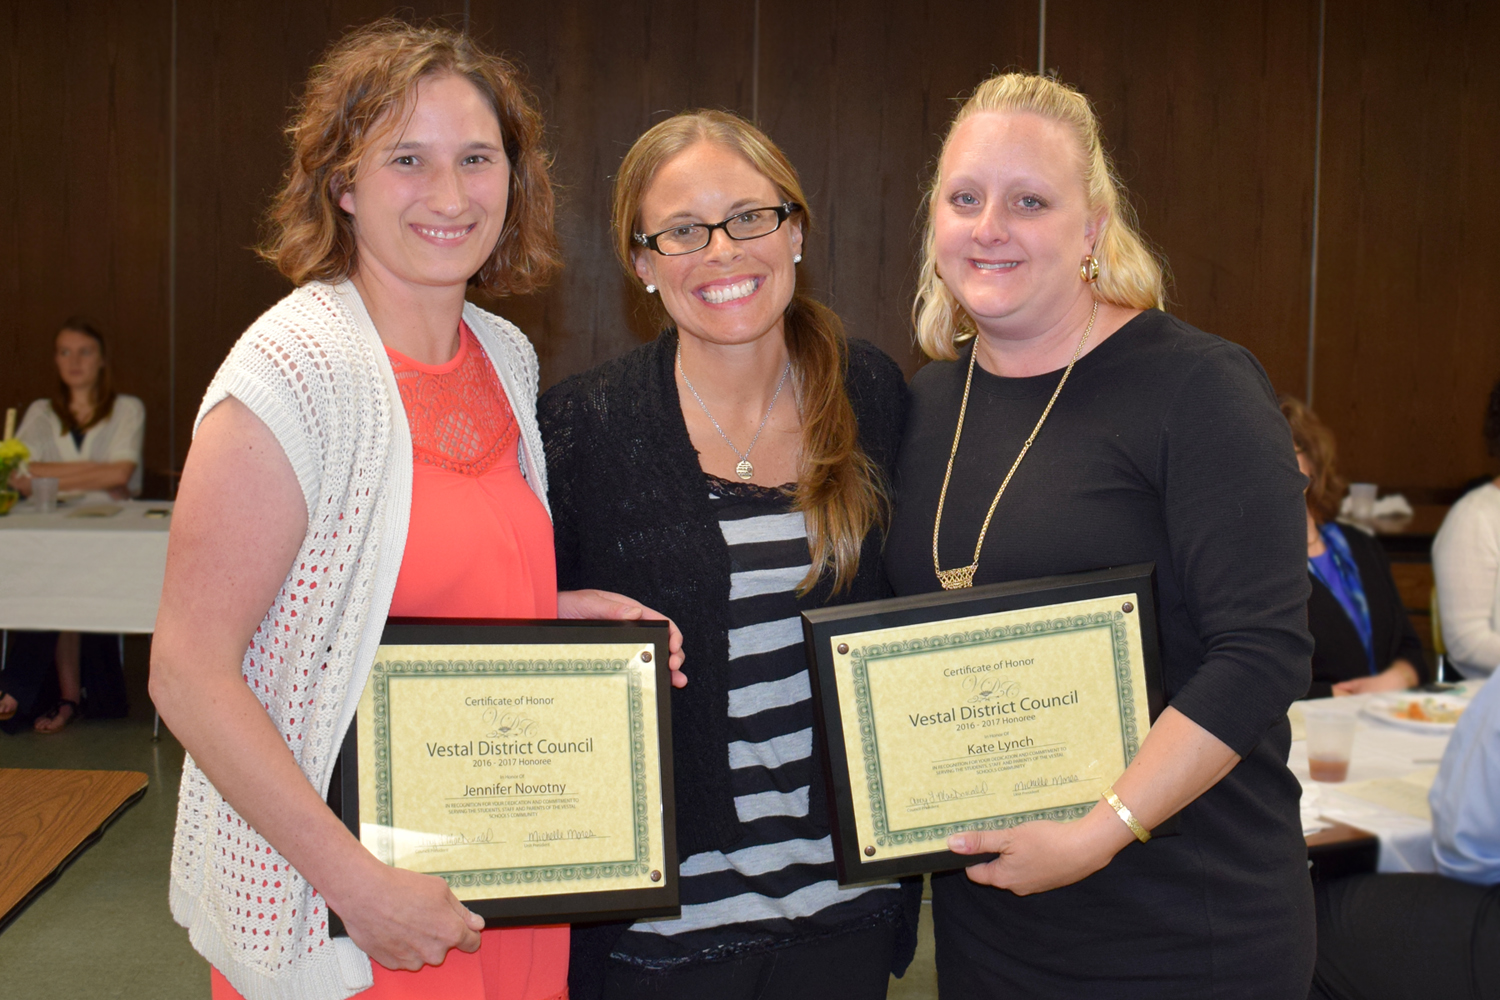 Tioga Hills PTA President Shelley Mones with Honorees Jennifer Novotny and Kate Lynch at the Distric